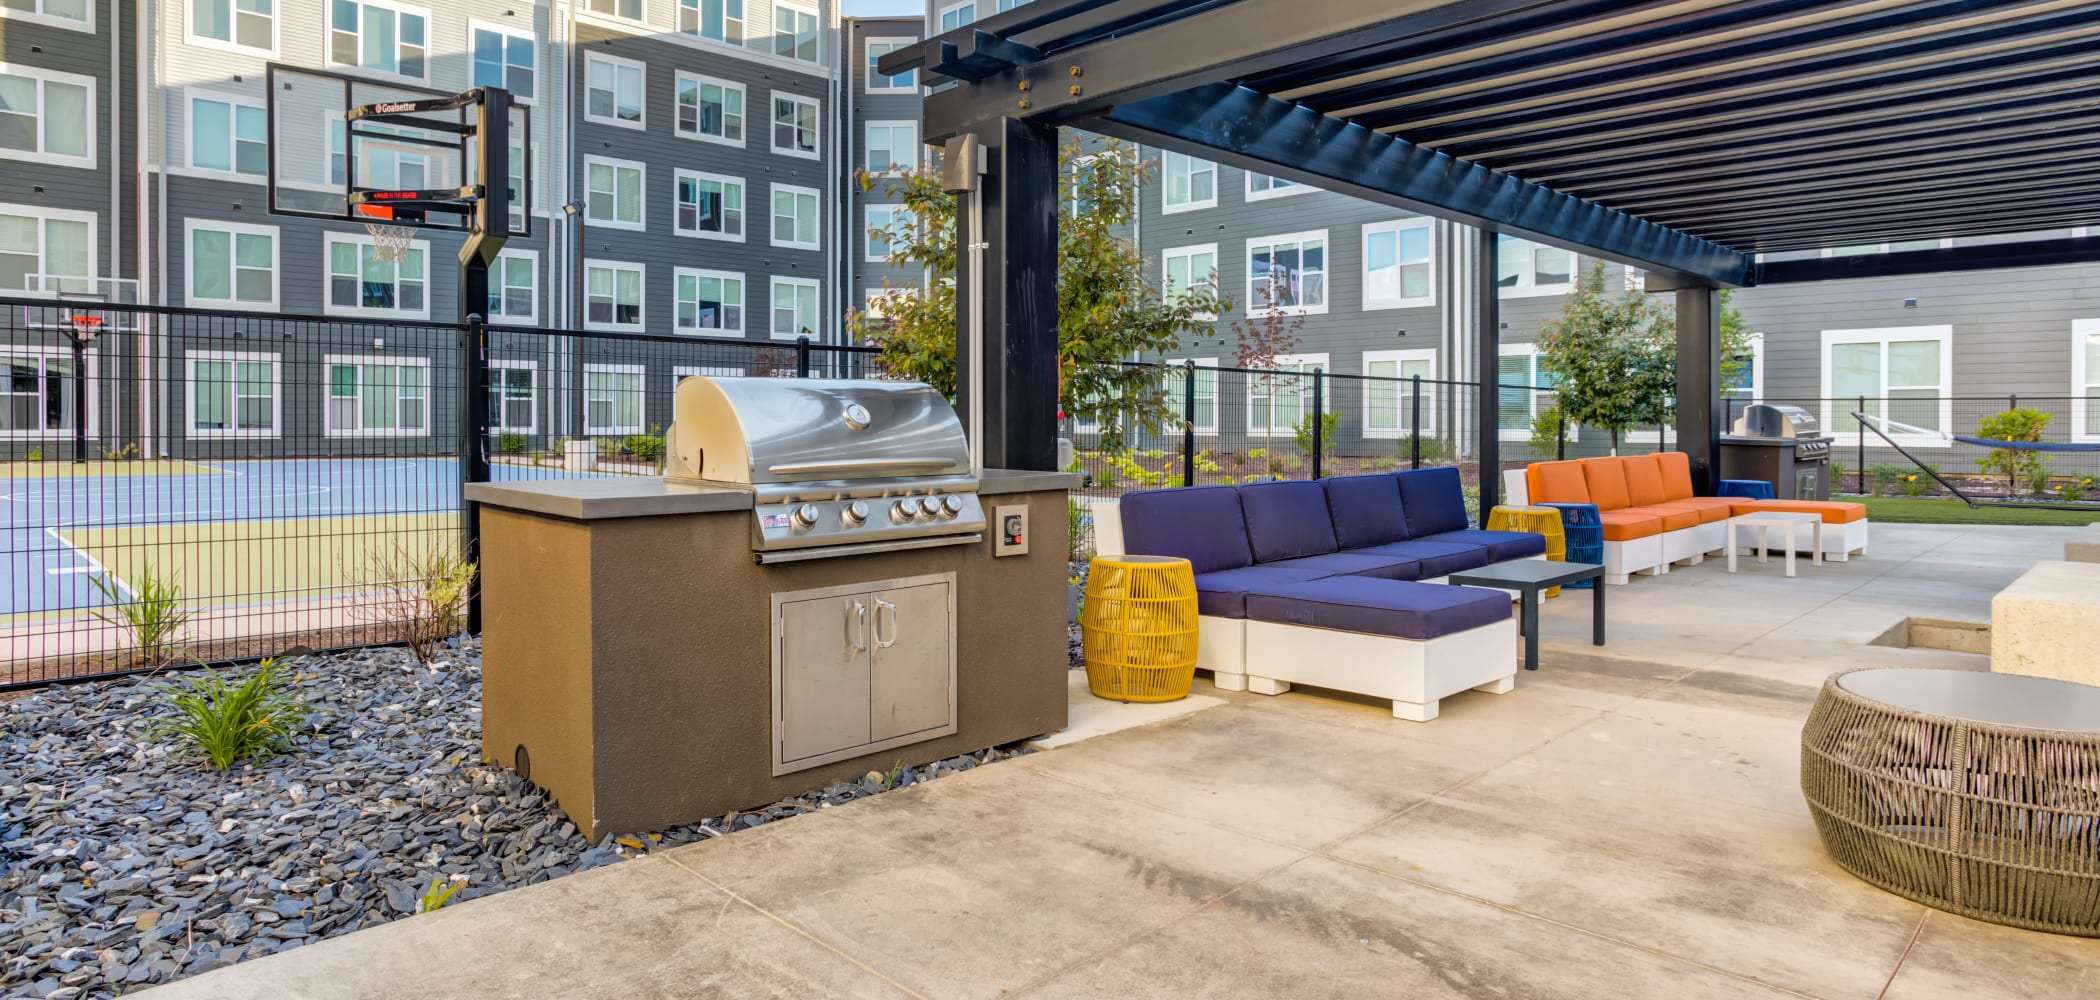 Outdoor BBQ Area at LATITUDE at River Landing in Coralville, Iowa